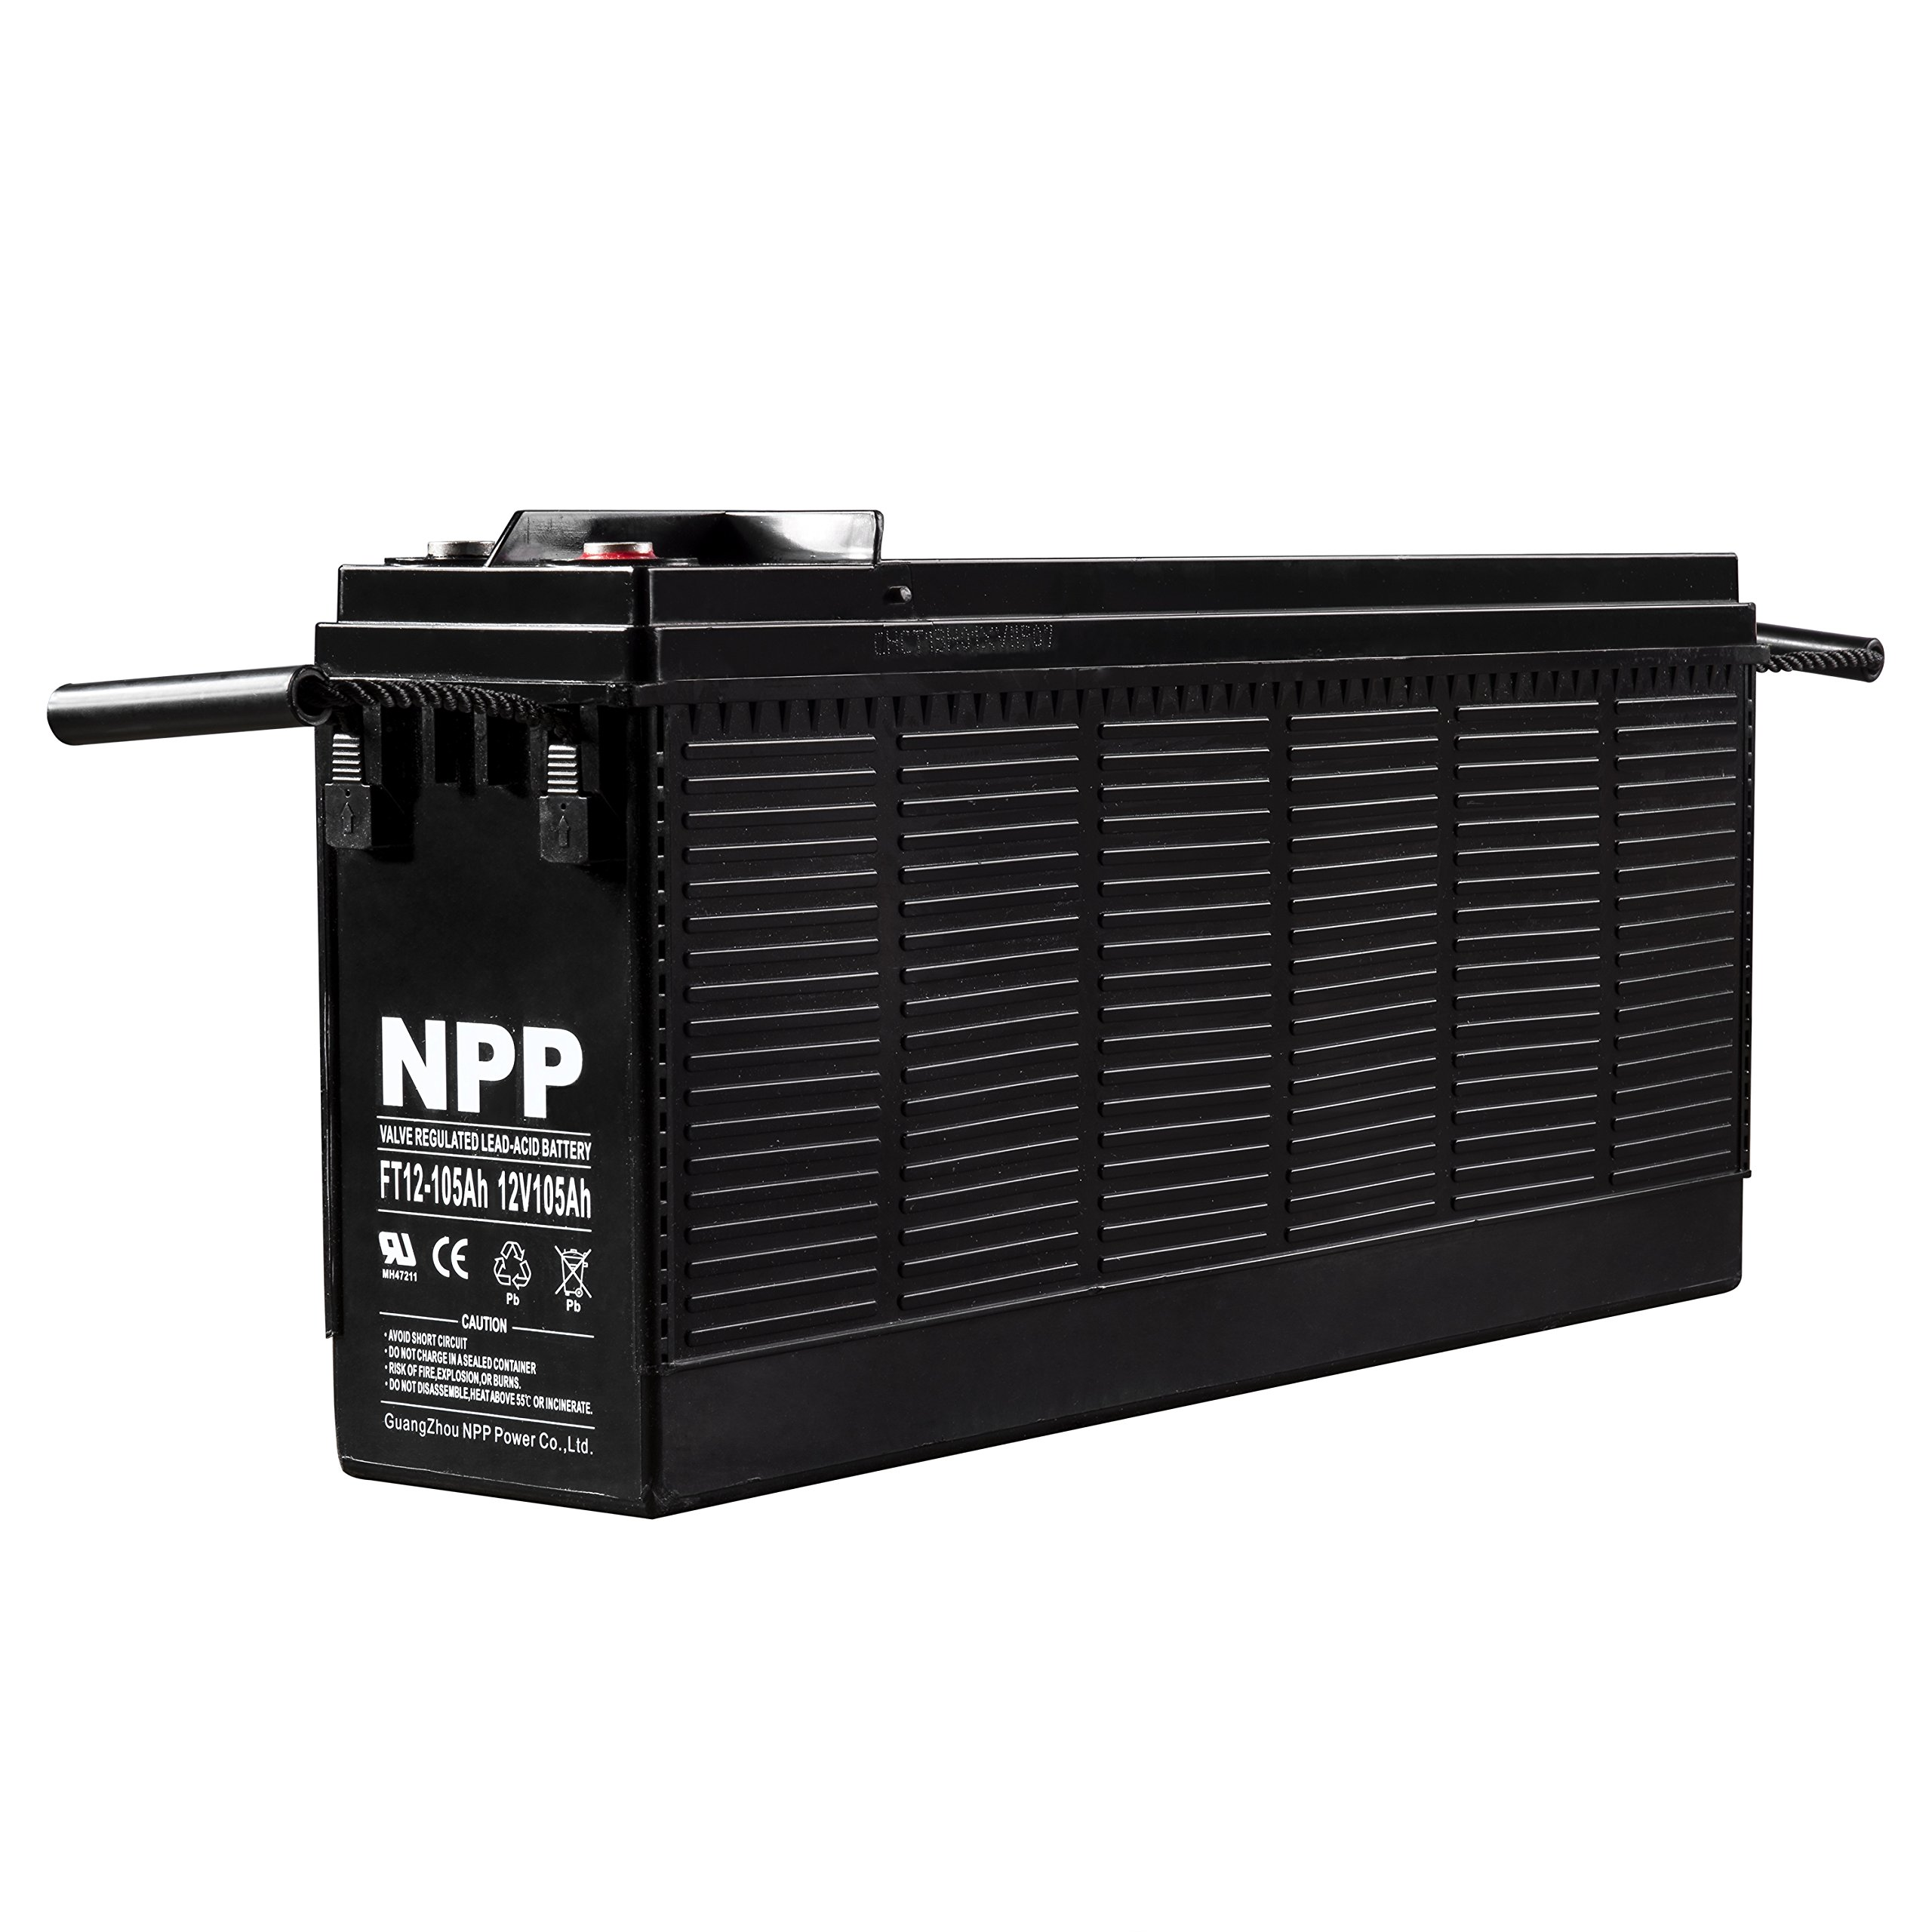 NPP 12V 100Ah FT12 105Ah Front Access Telecom Deep Cycle AGM Battery With Button Style Terminals